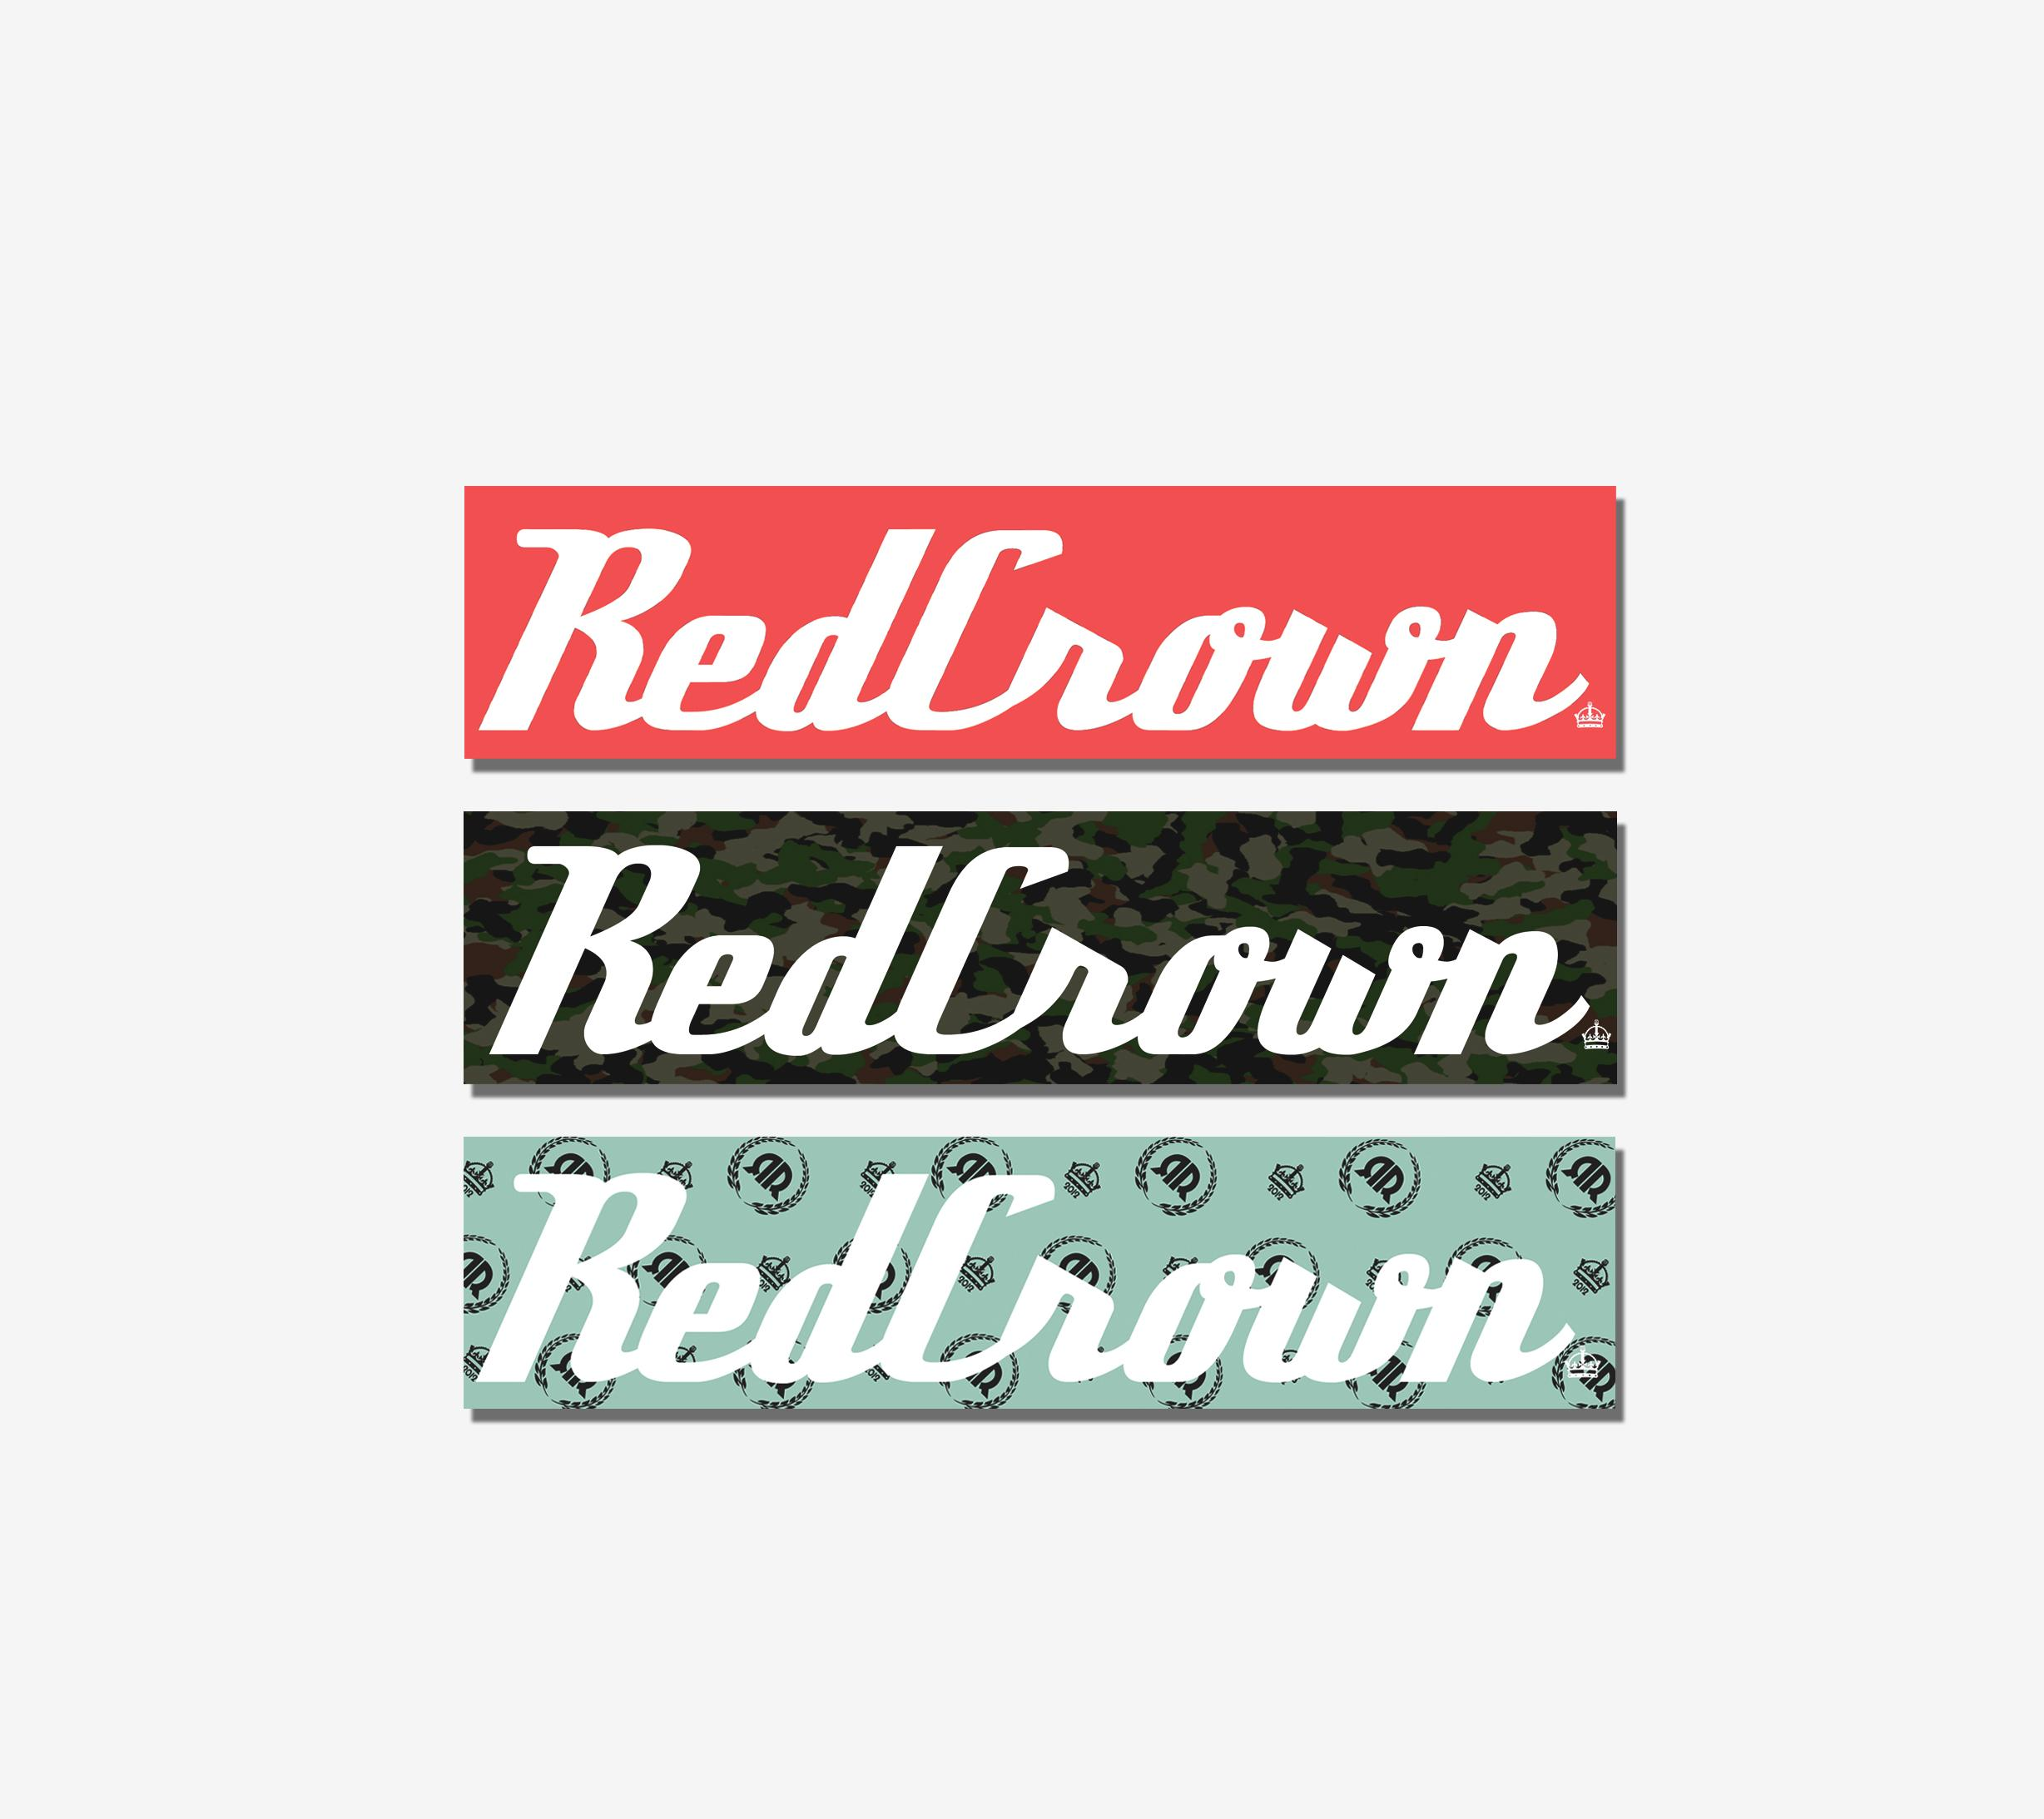 RedCrown -  Canada - image 4 - student project